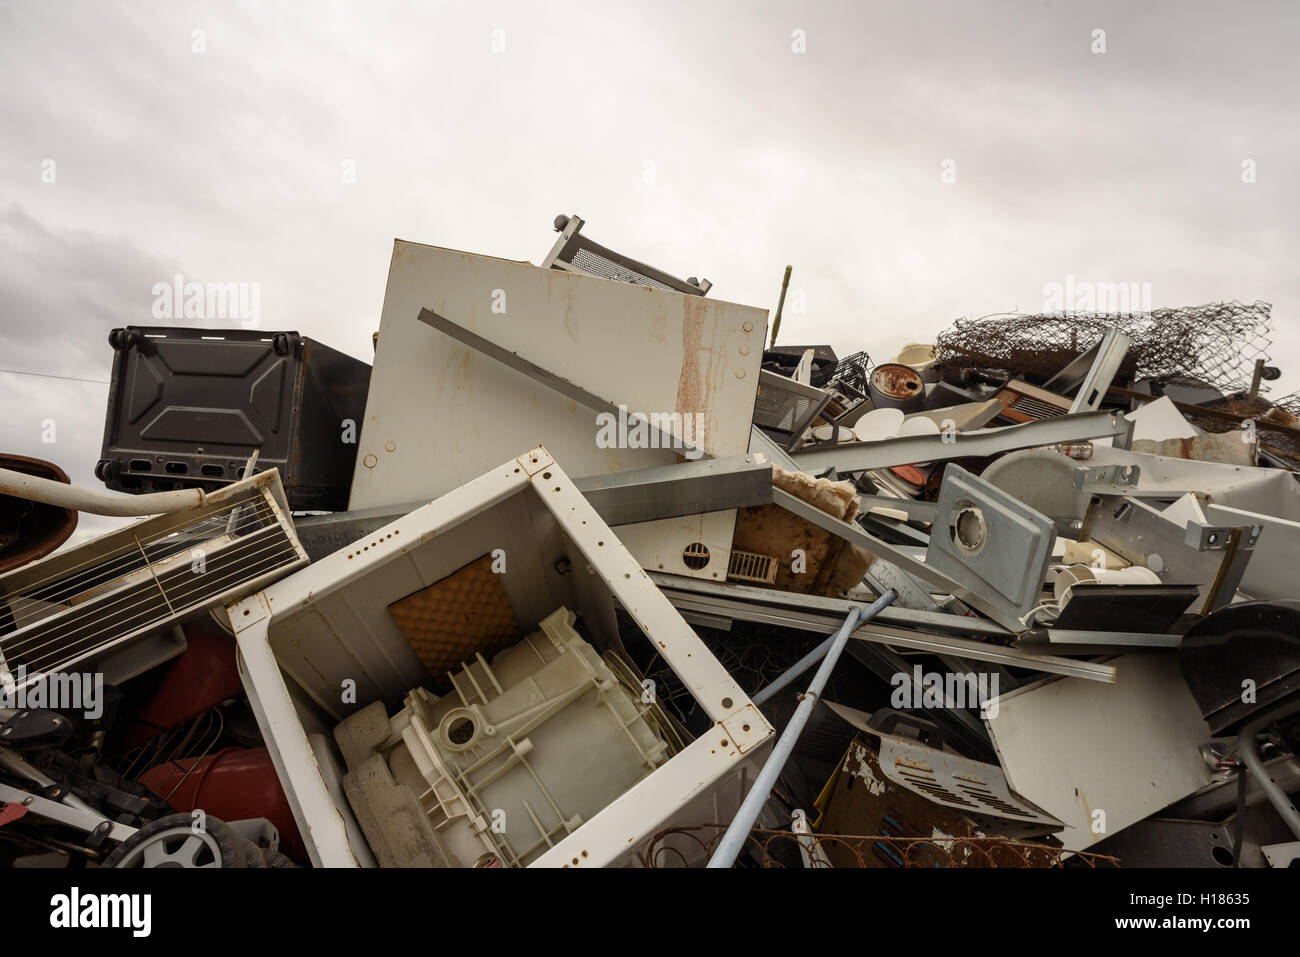 Scrap metal pile with home appliances and white goods collected for recycling. - Stock Image